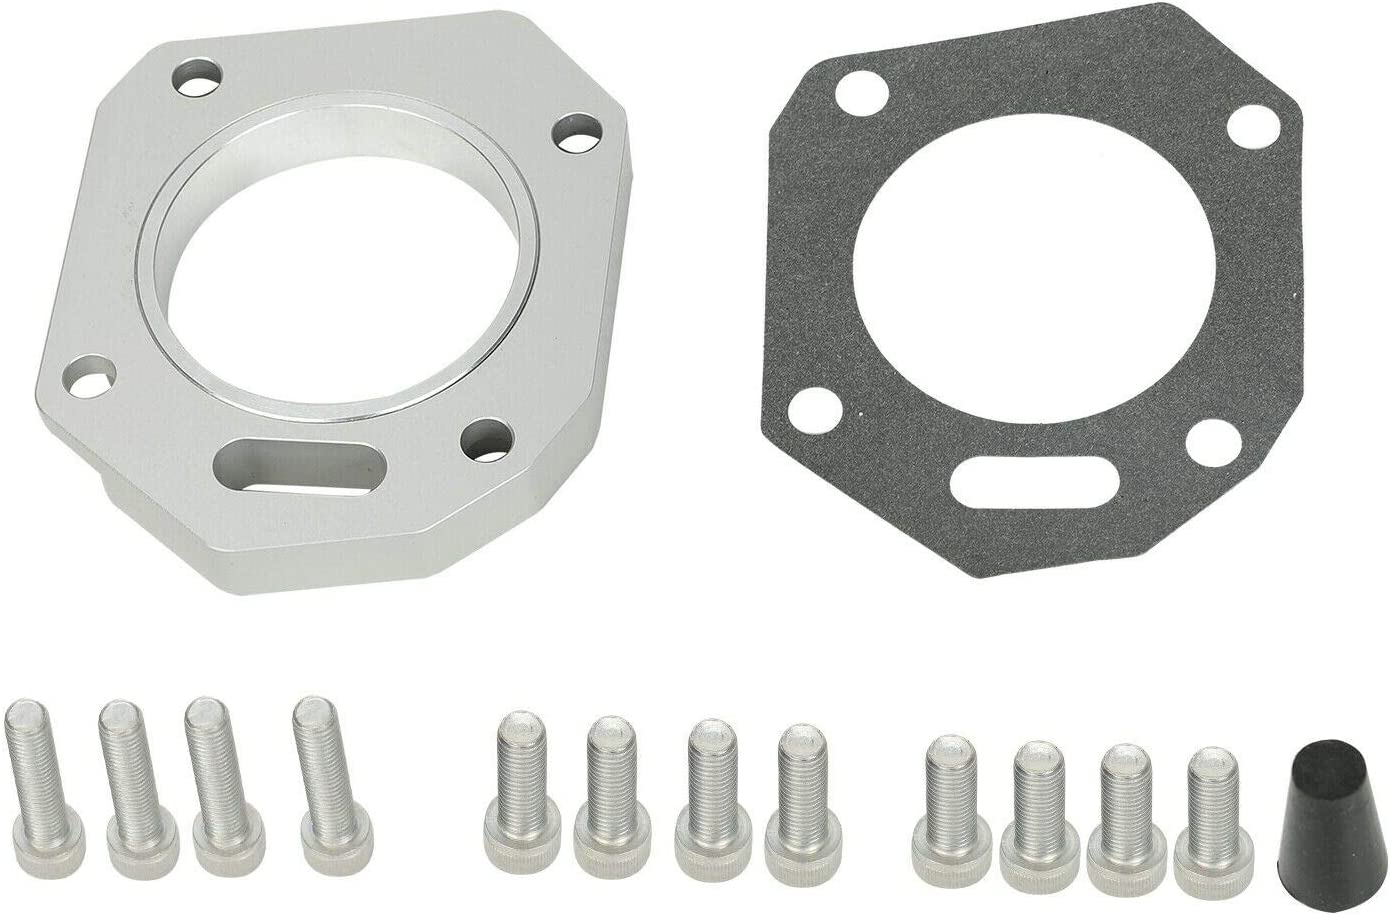 BETTERCLOUD Dual 5% OFF supreme Throttle Body Adapter k24RB K20 for Replacement